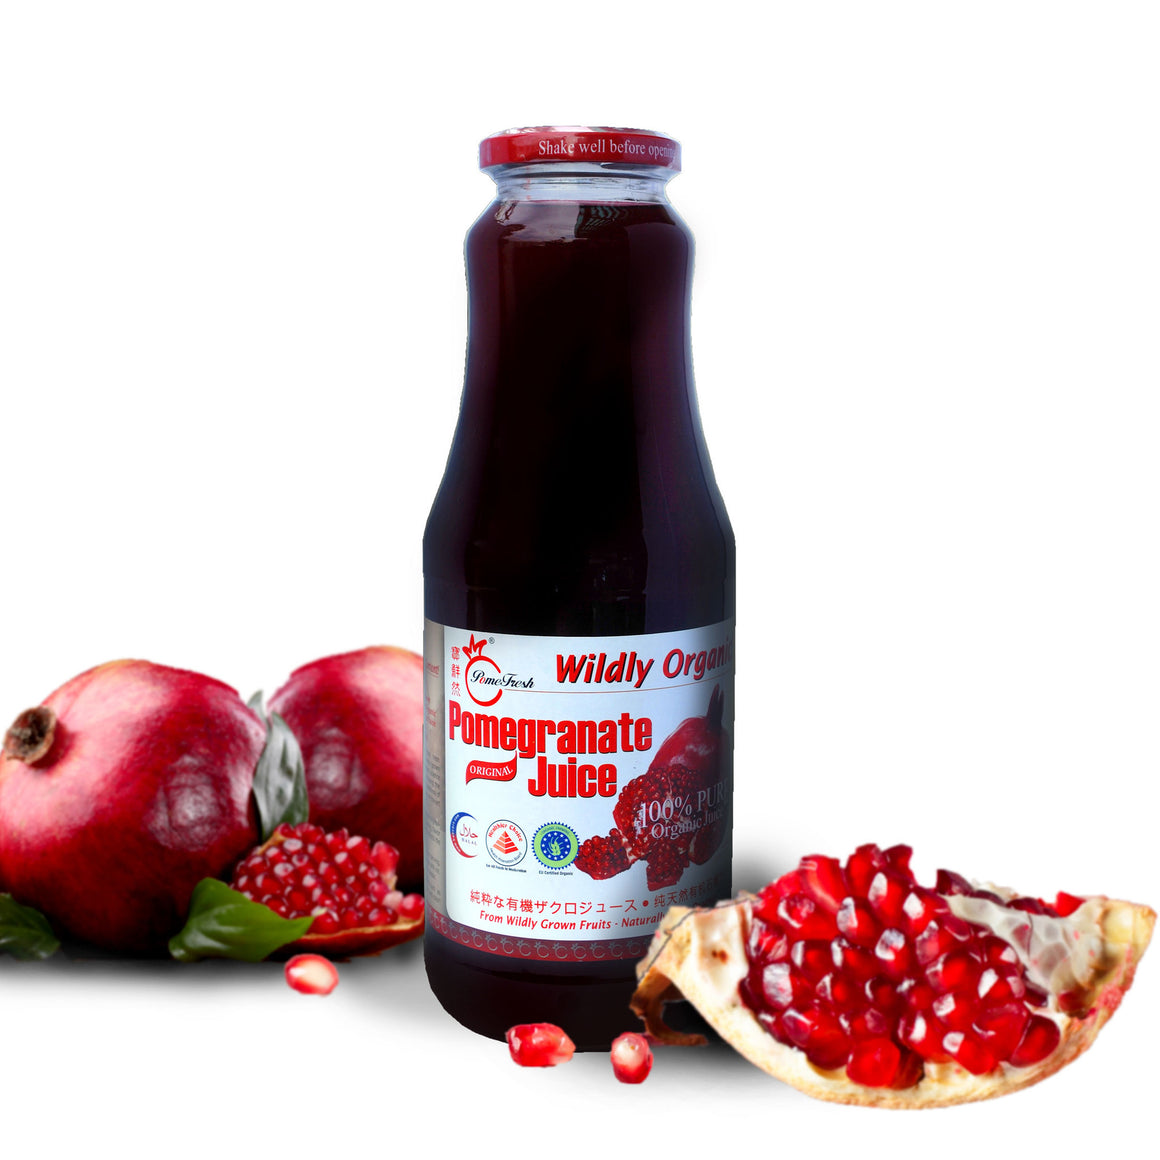 有機石榴汁1升裝 PomeFresh 100% Organic Pomegranate Juice 1L